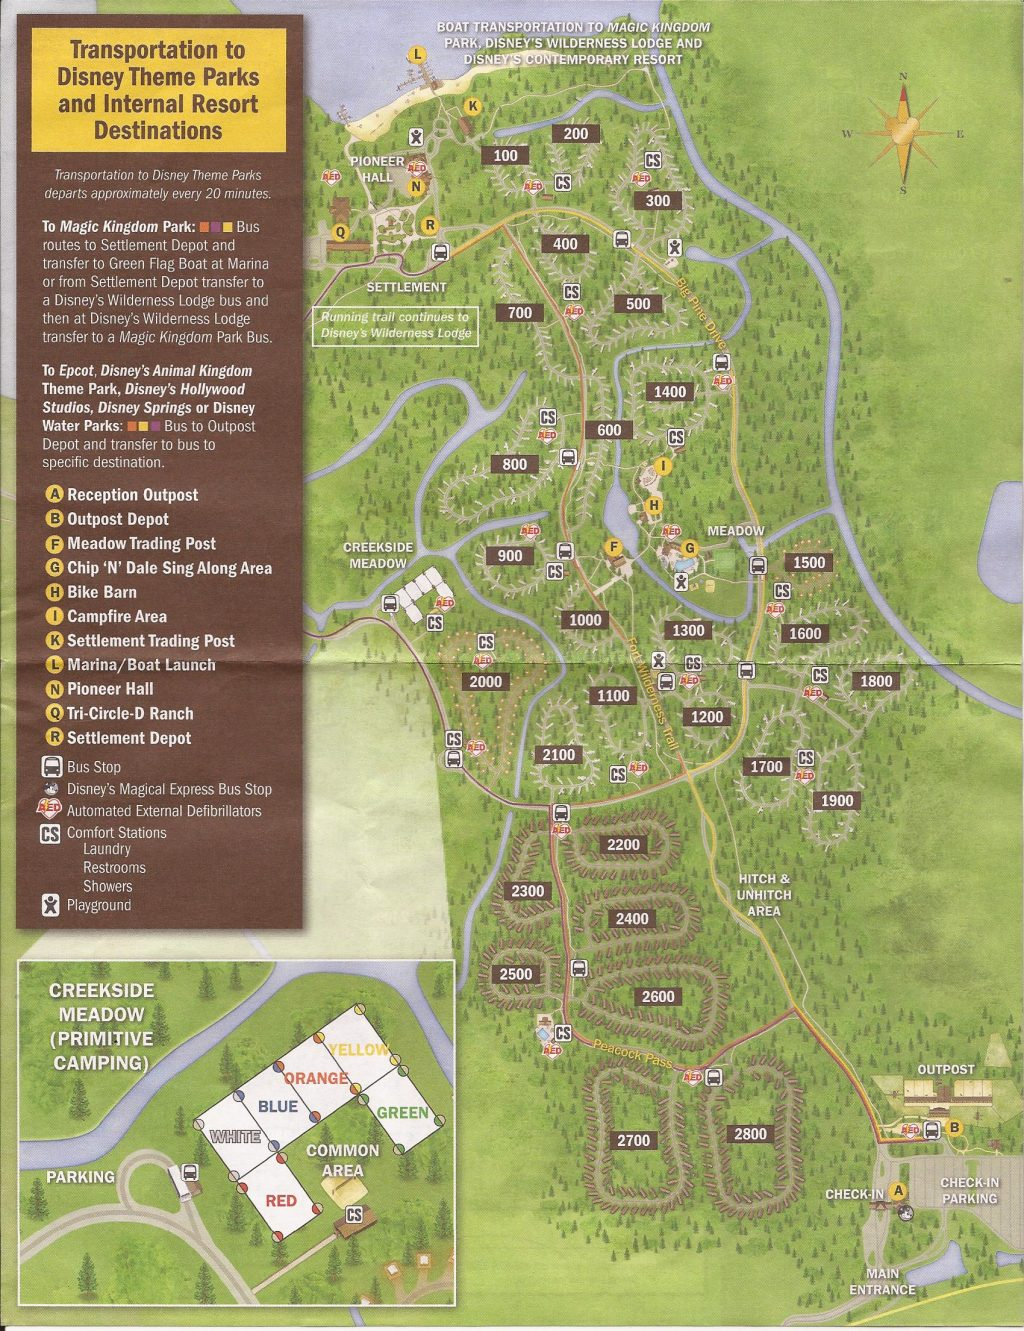 Camping at Disney World: Fort Wilderness Resort & Campground Review on